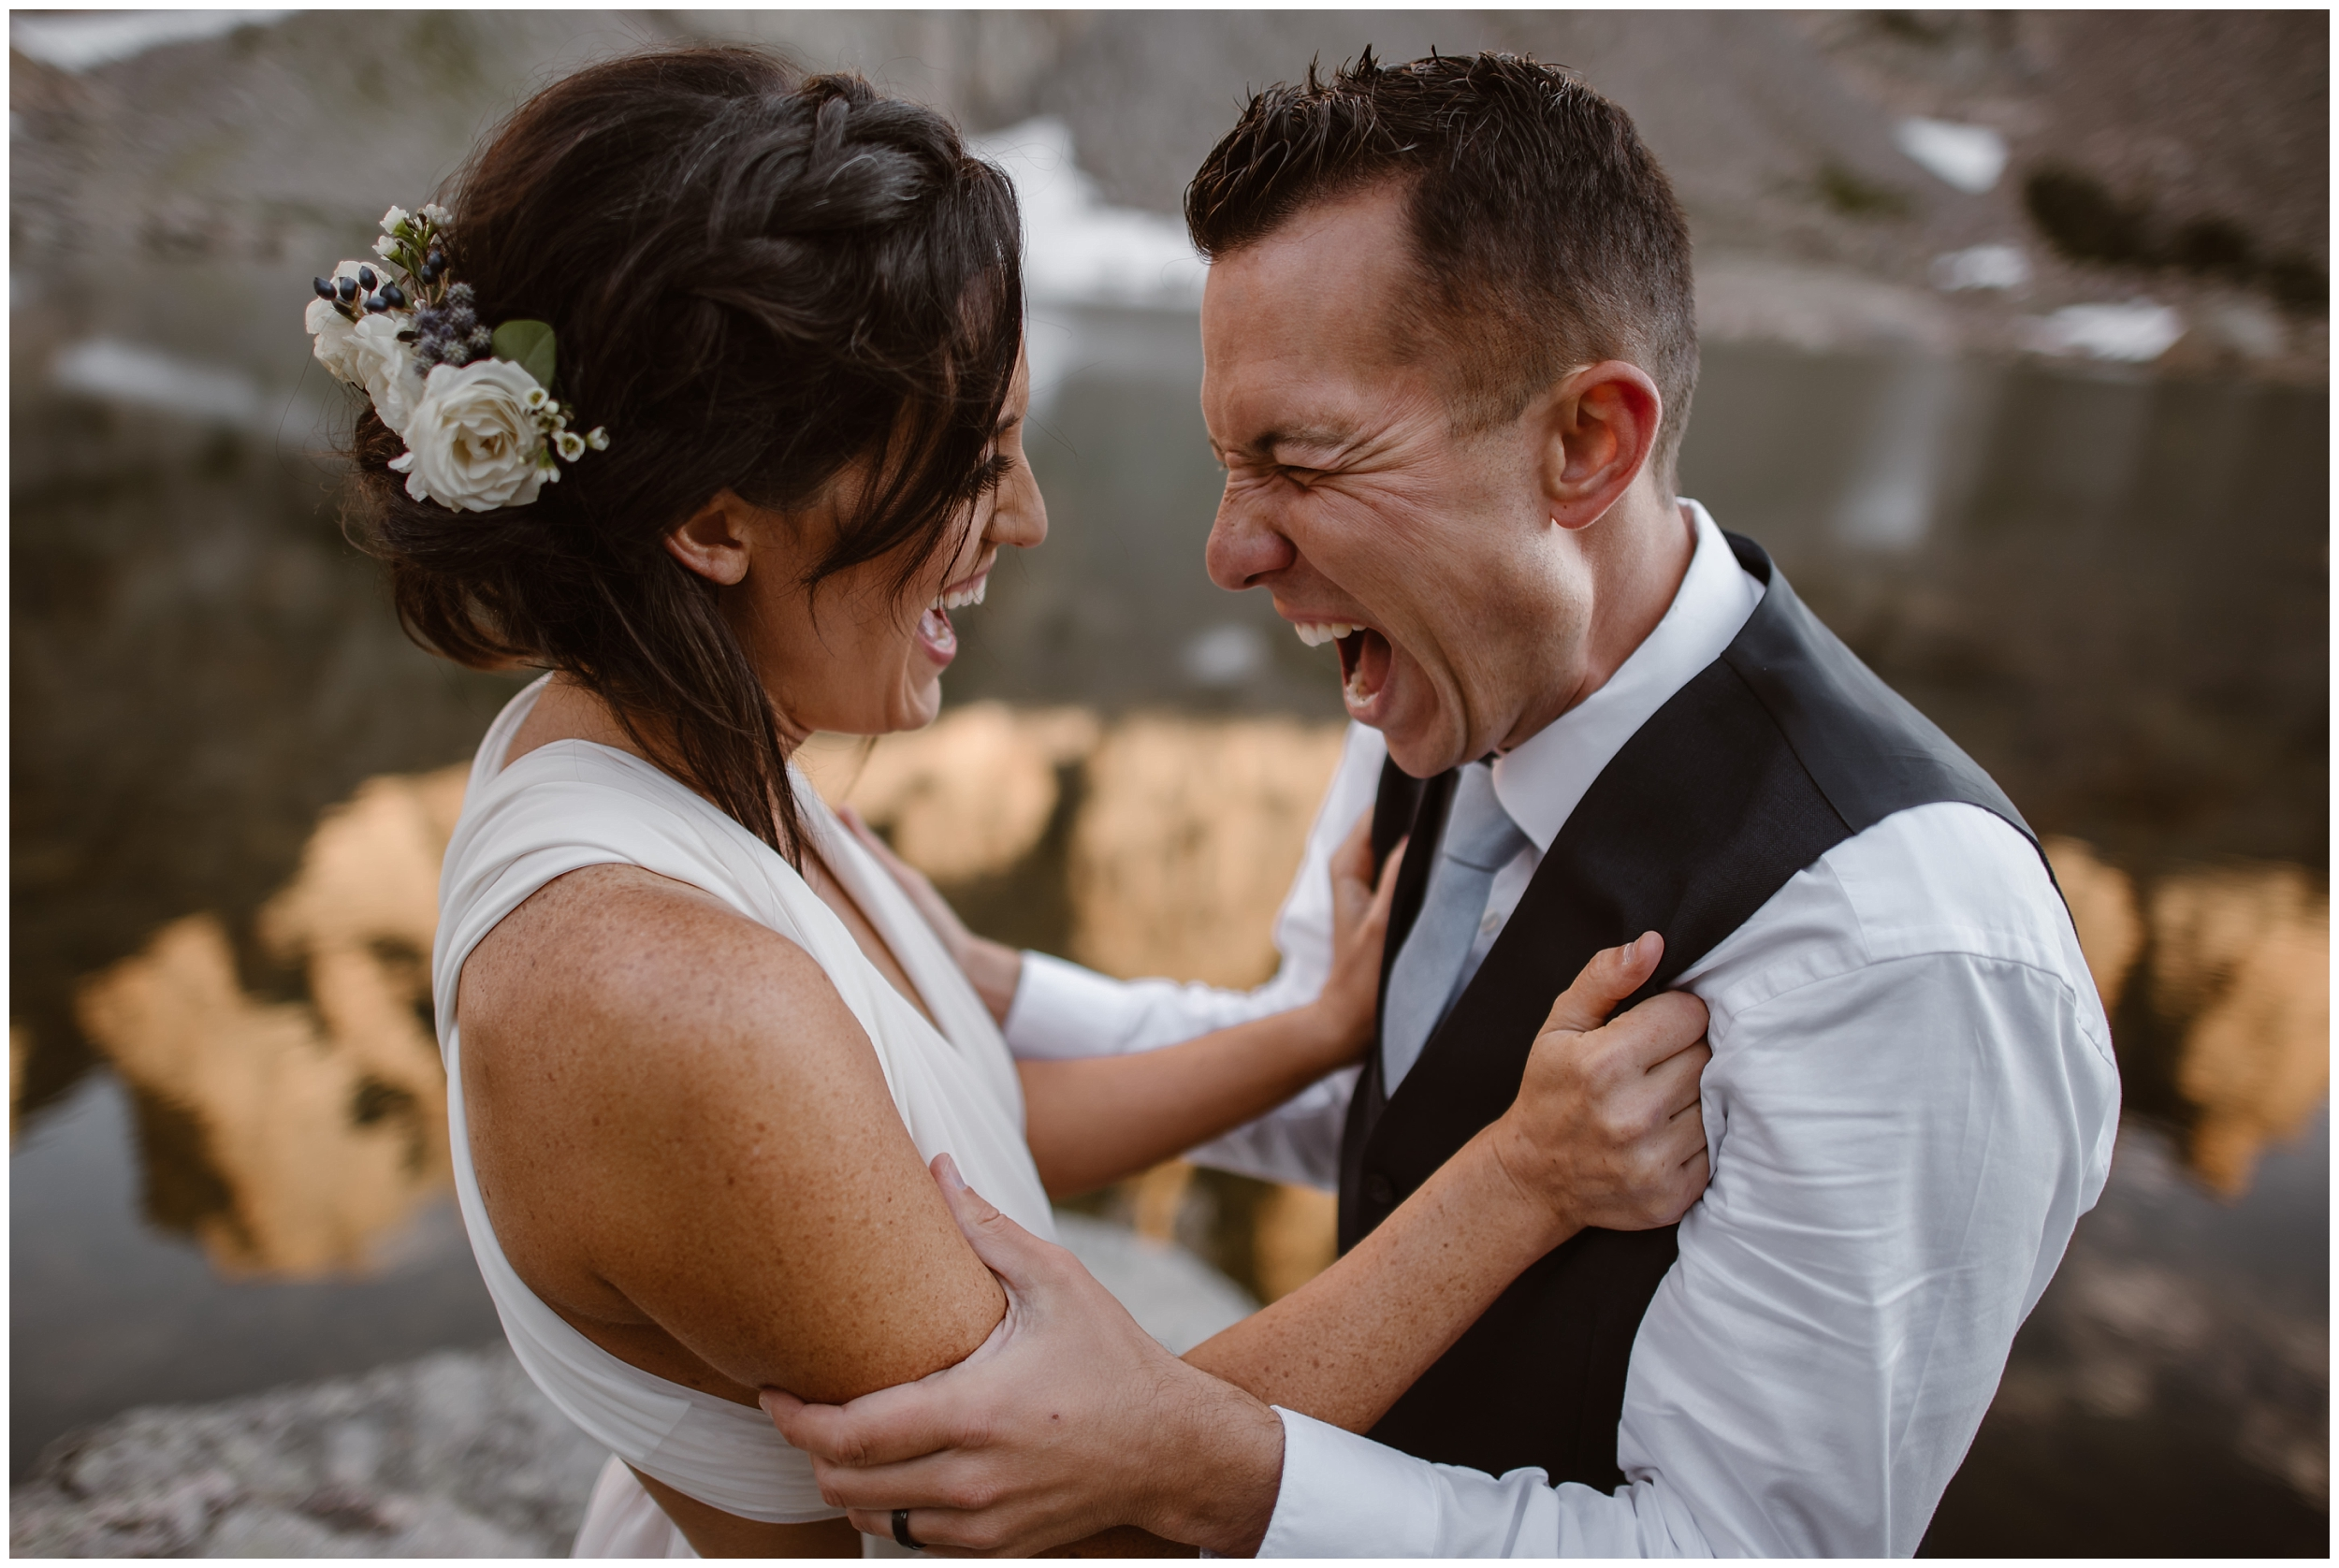 A bride and groom, just finishing their alternative wedding ceremony, grab onto each other and yell excitedly. The bride, smiling and excited, stares are her groom, who's holding onto her and screaming as loud as he can. This non-traditional wedding ceremony was captured by elopement wedding photographer Adventure Instead.